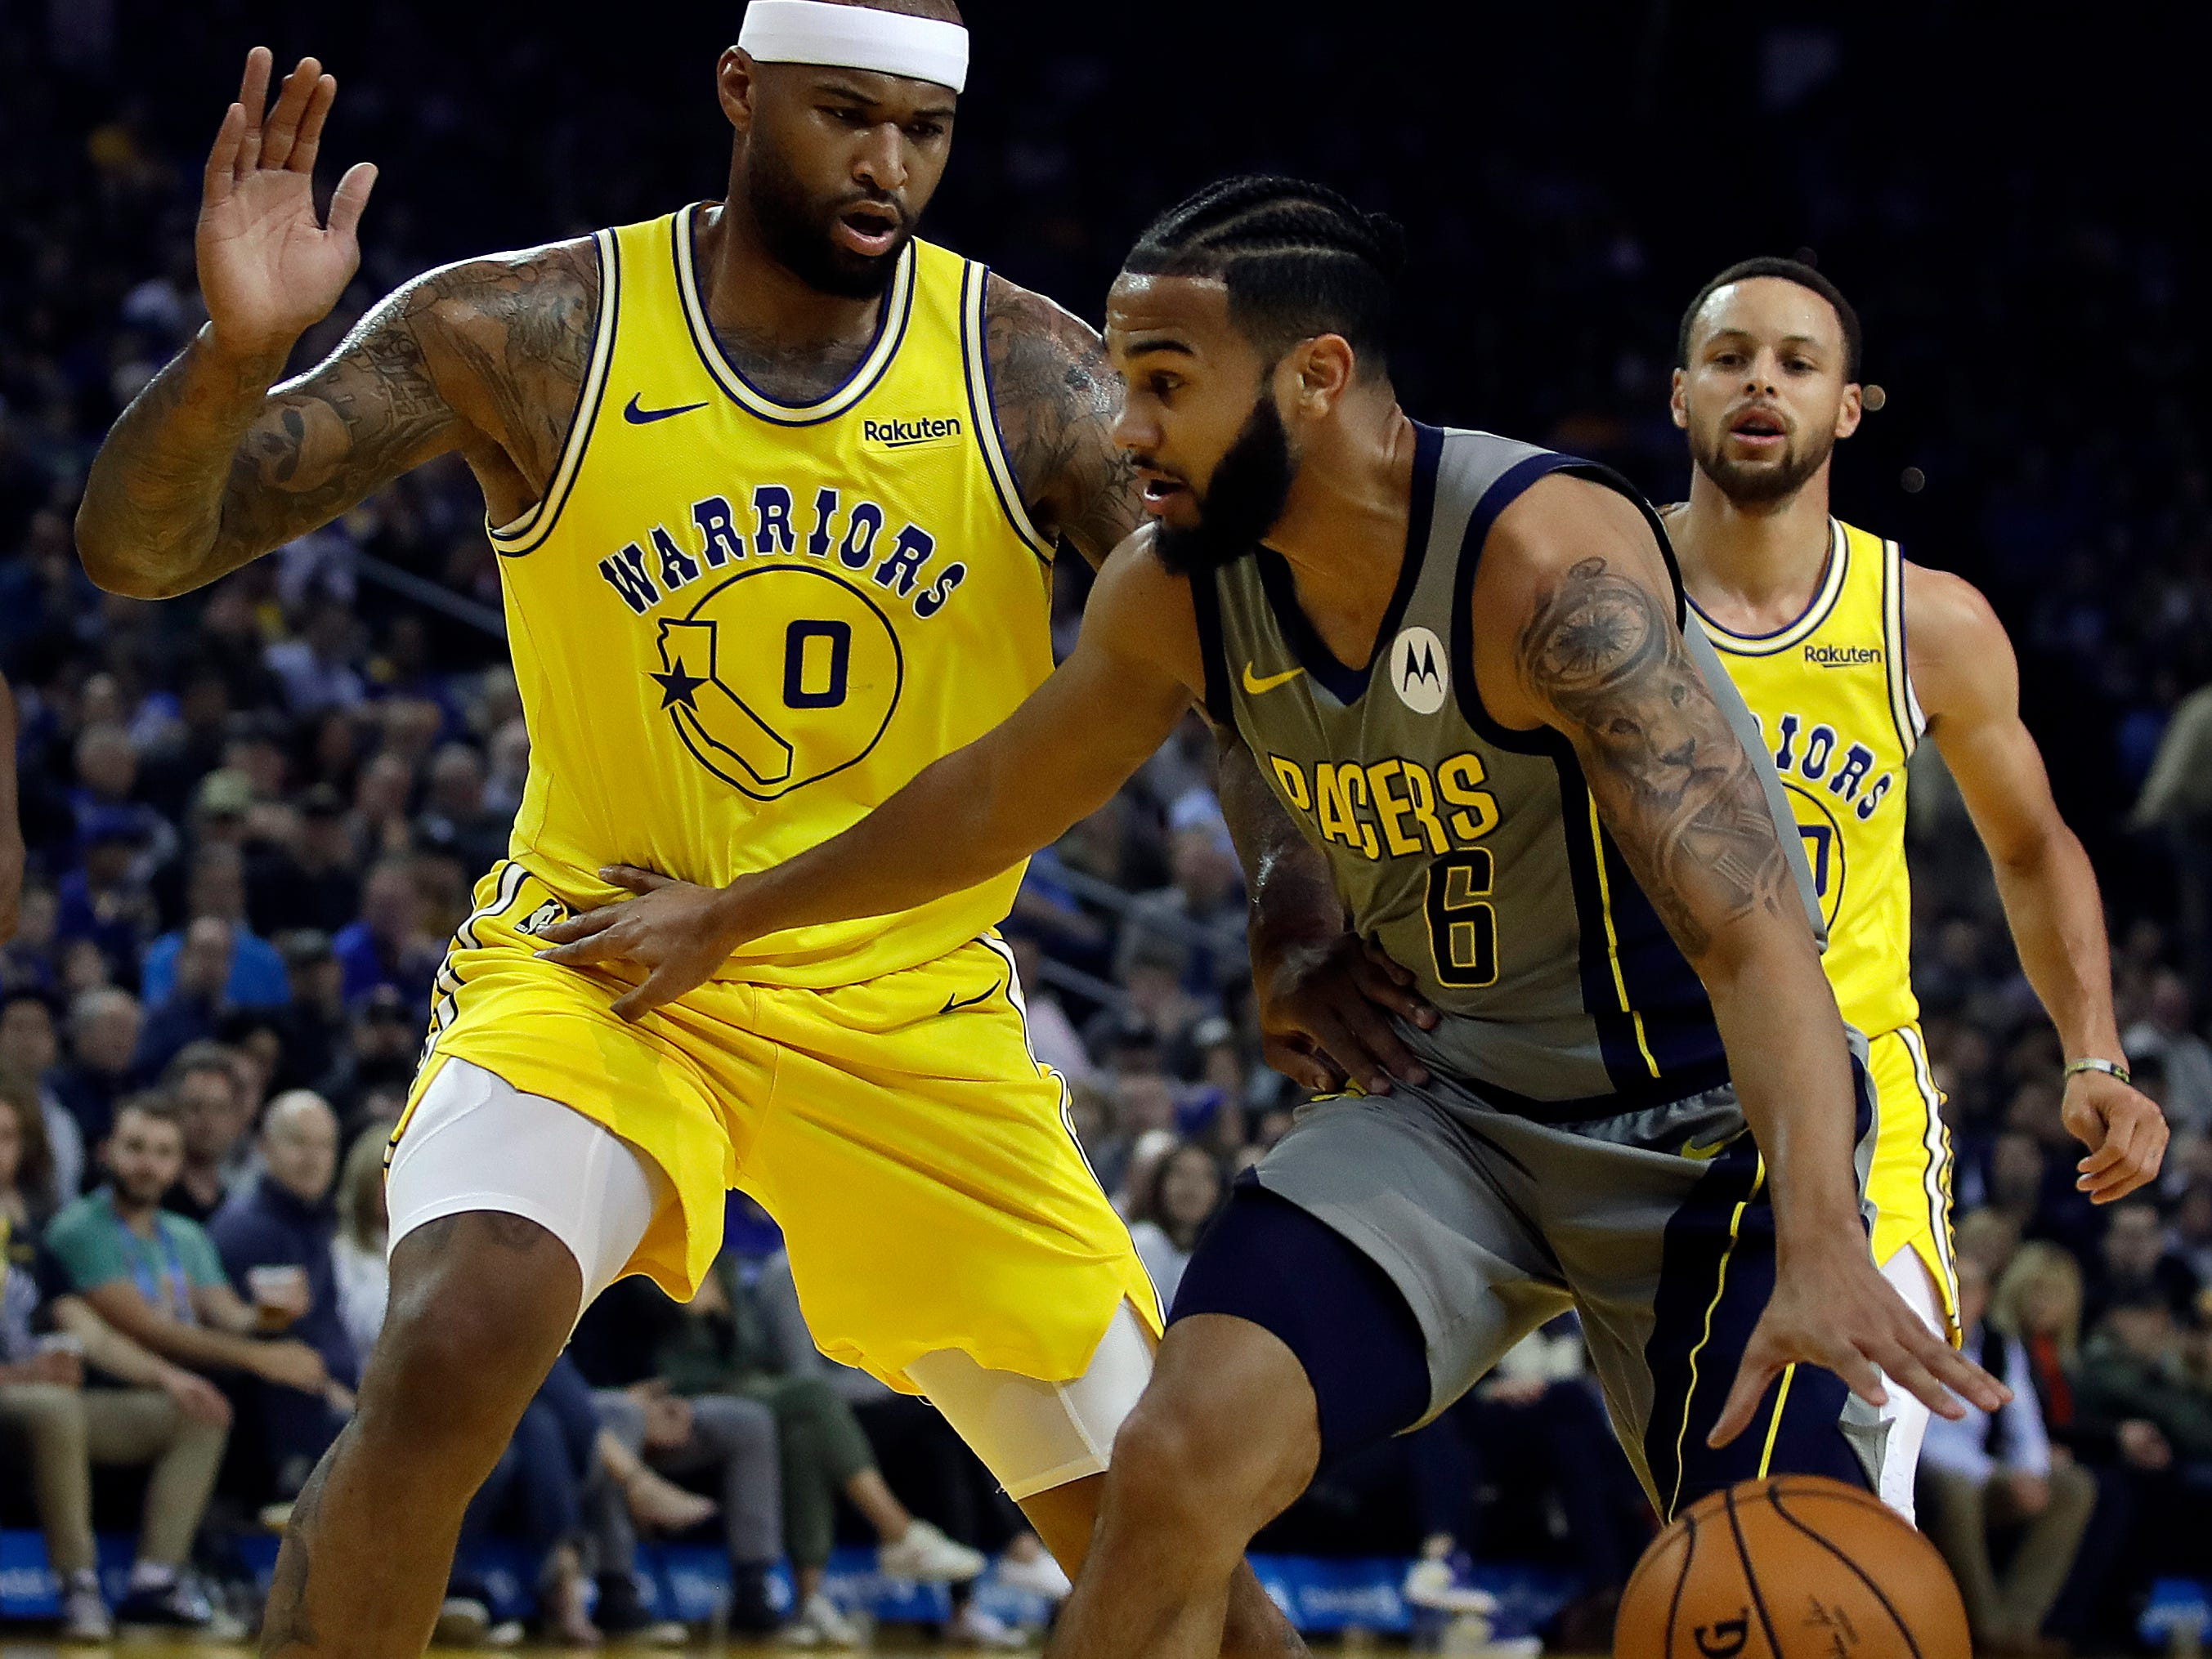 Indiana Pacers' Cory Joseph, right, drives the ball as Golden State Warriors' DeMarcus Cousins (0) defends during the first half of an NBA basketball game Thursday, March 21, 2019, in Oakland, Calif.